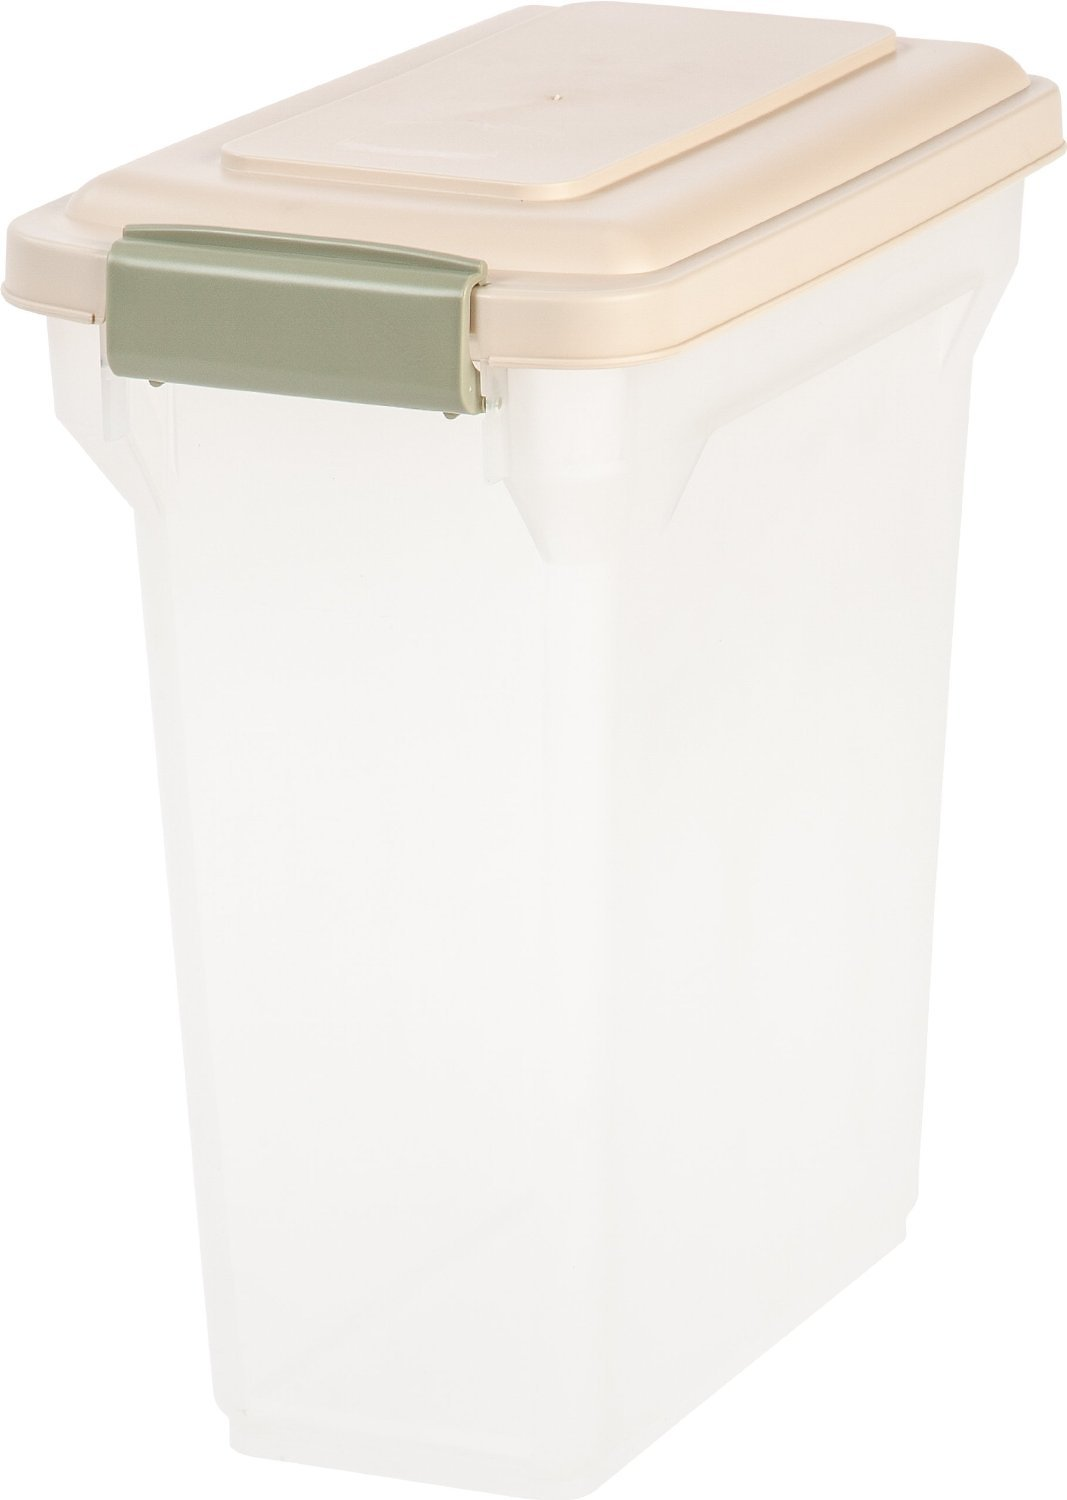 iris airtight pet food storage container clearalmond